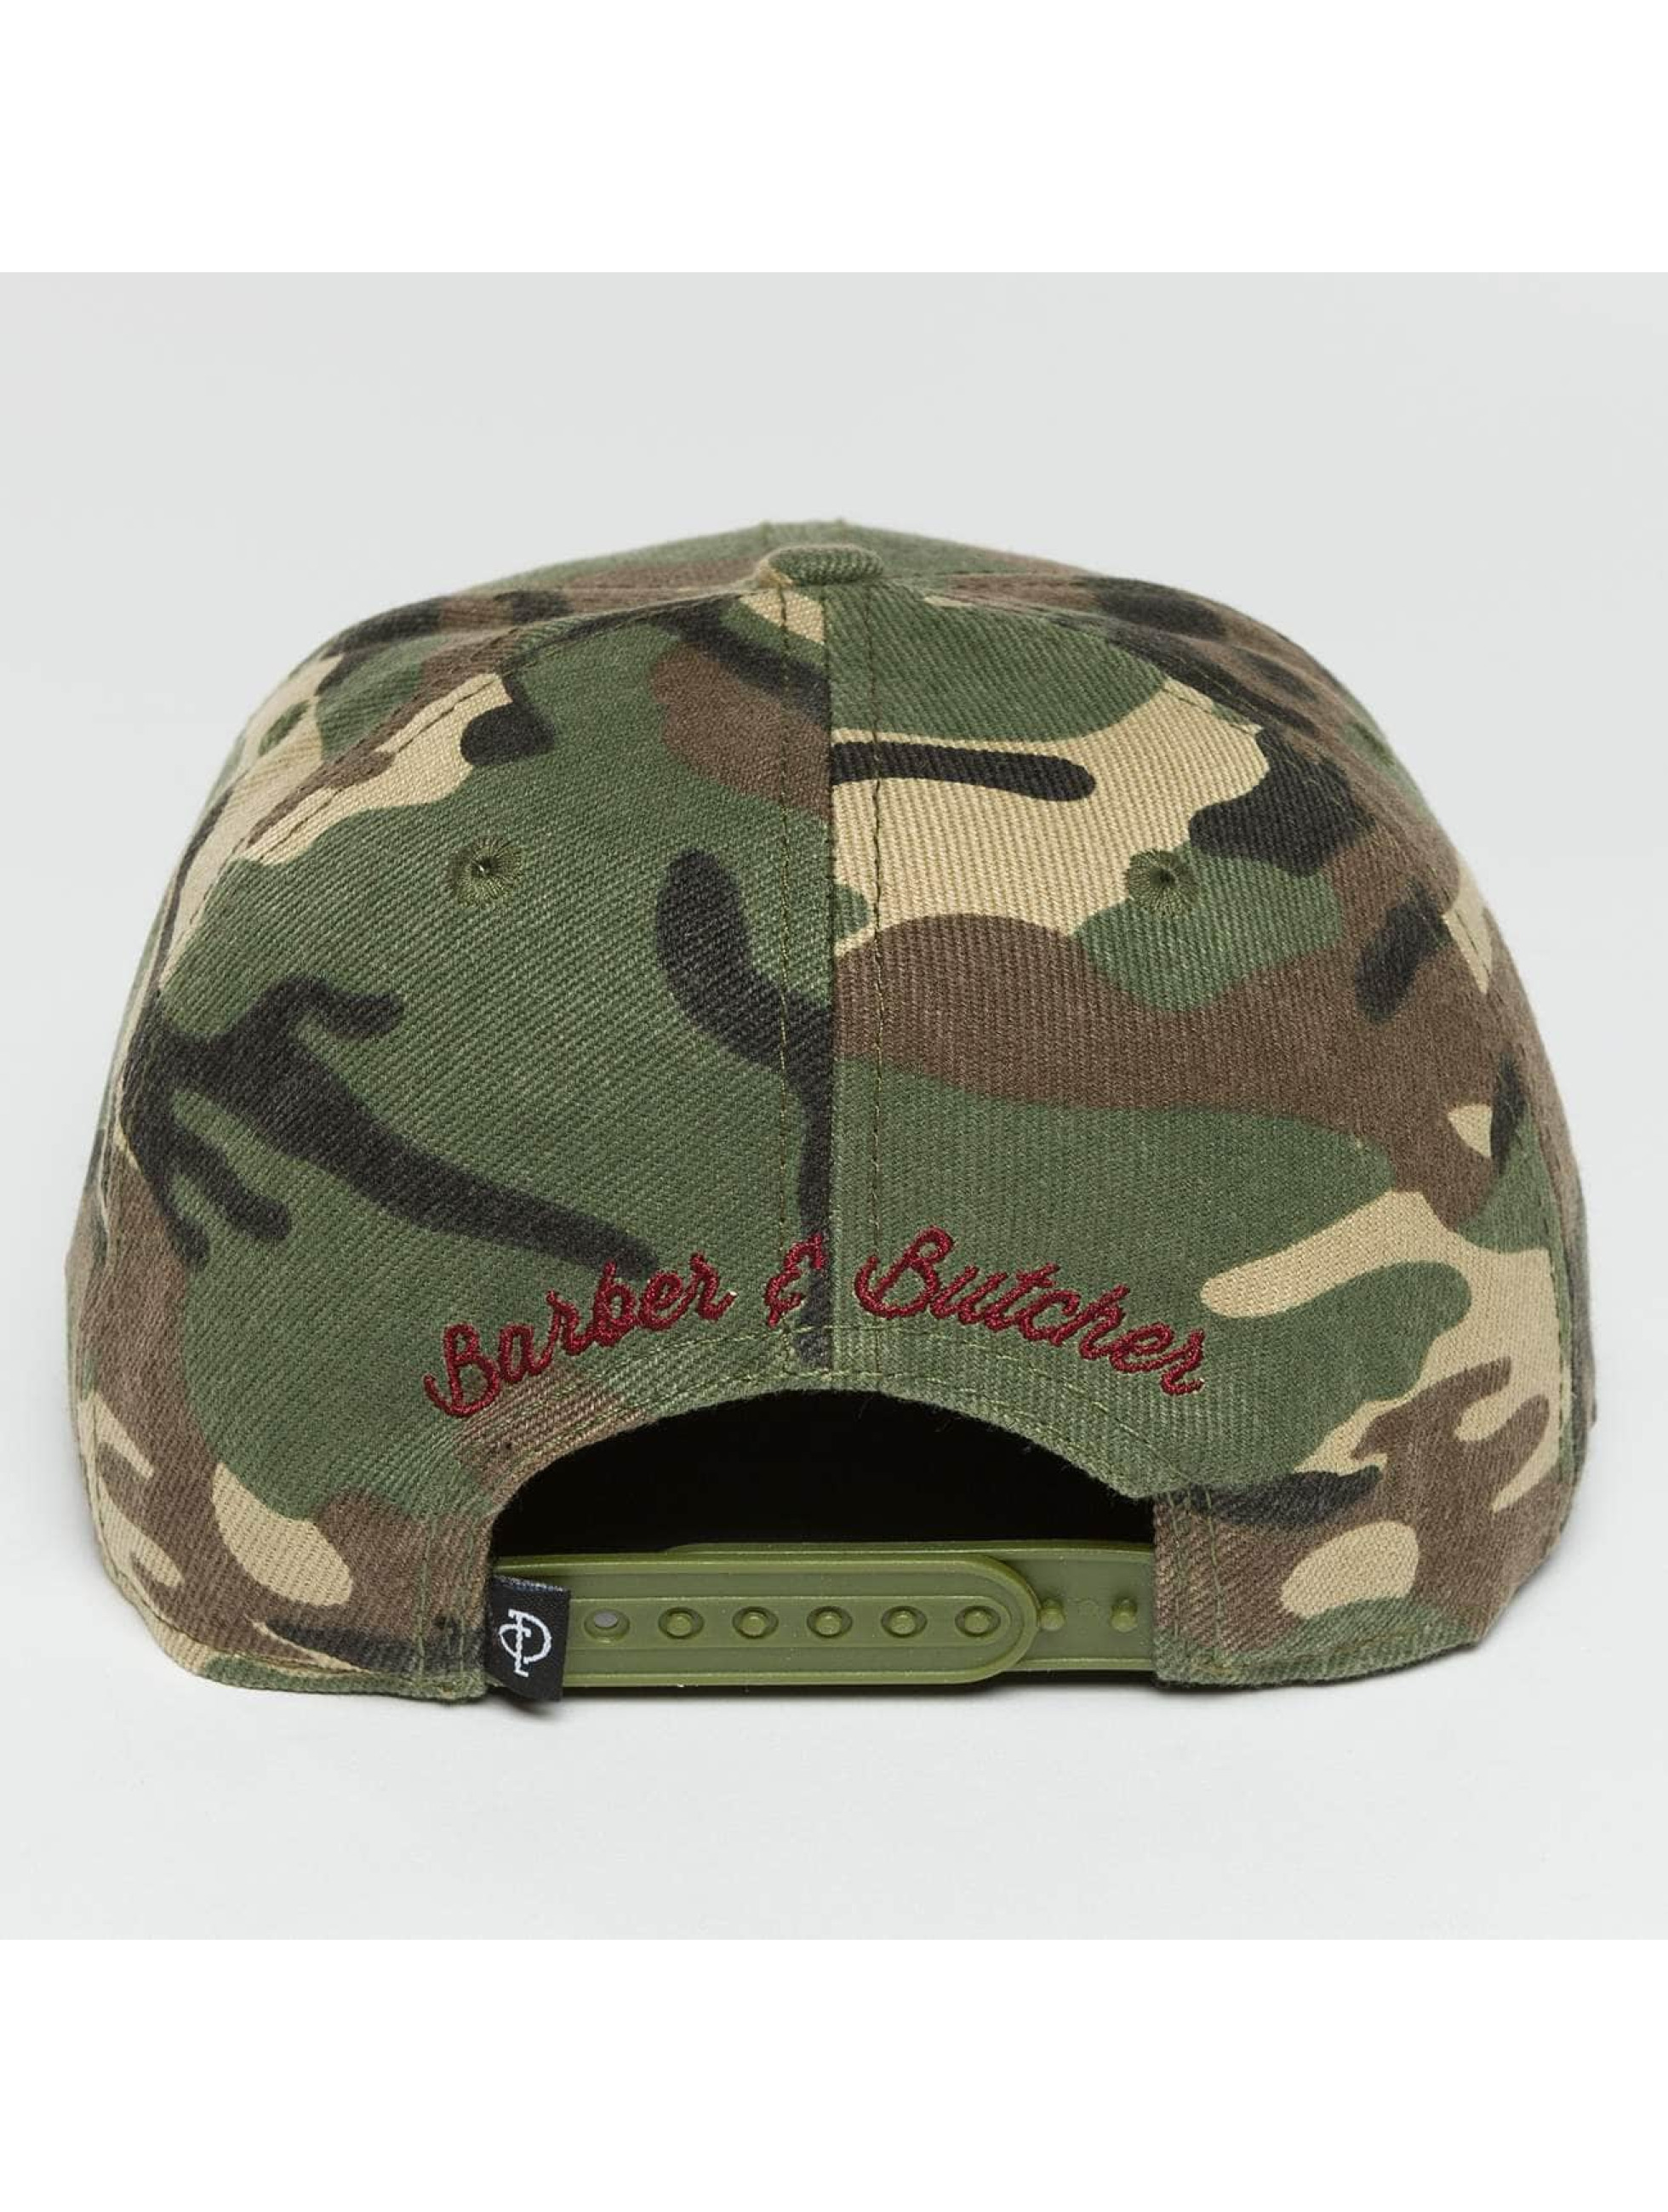 Distorted People Casquette Snapback & Strapback Barber & Butcher camouflage